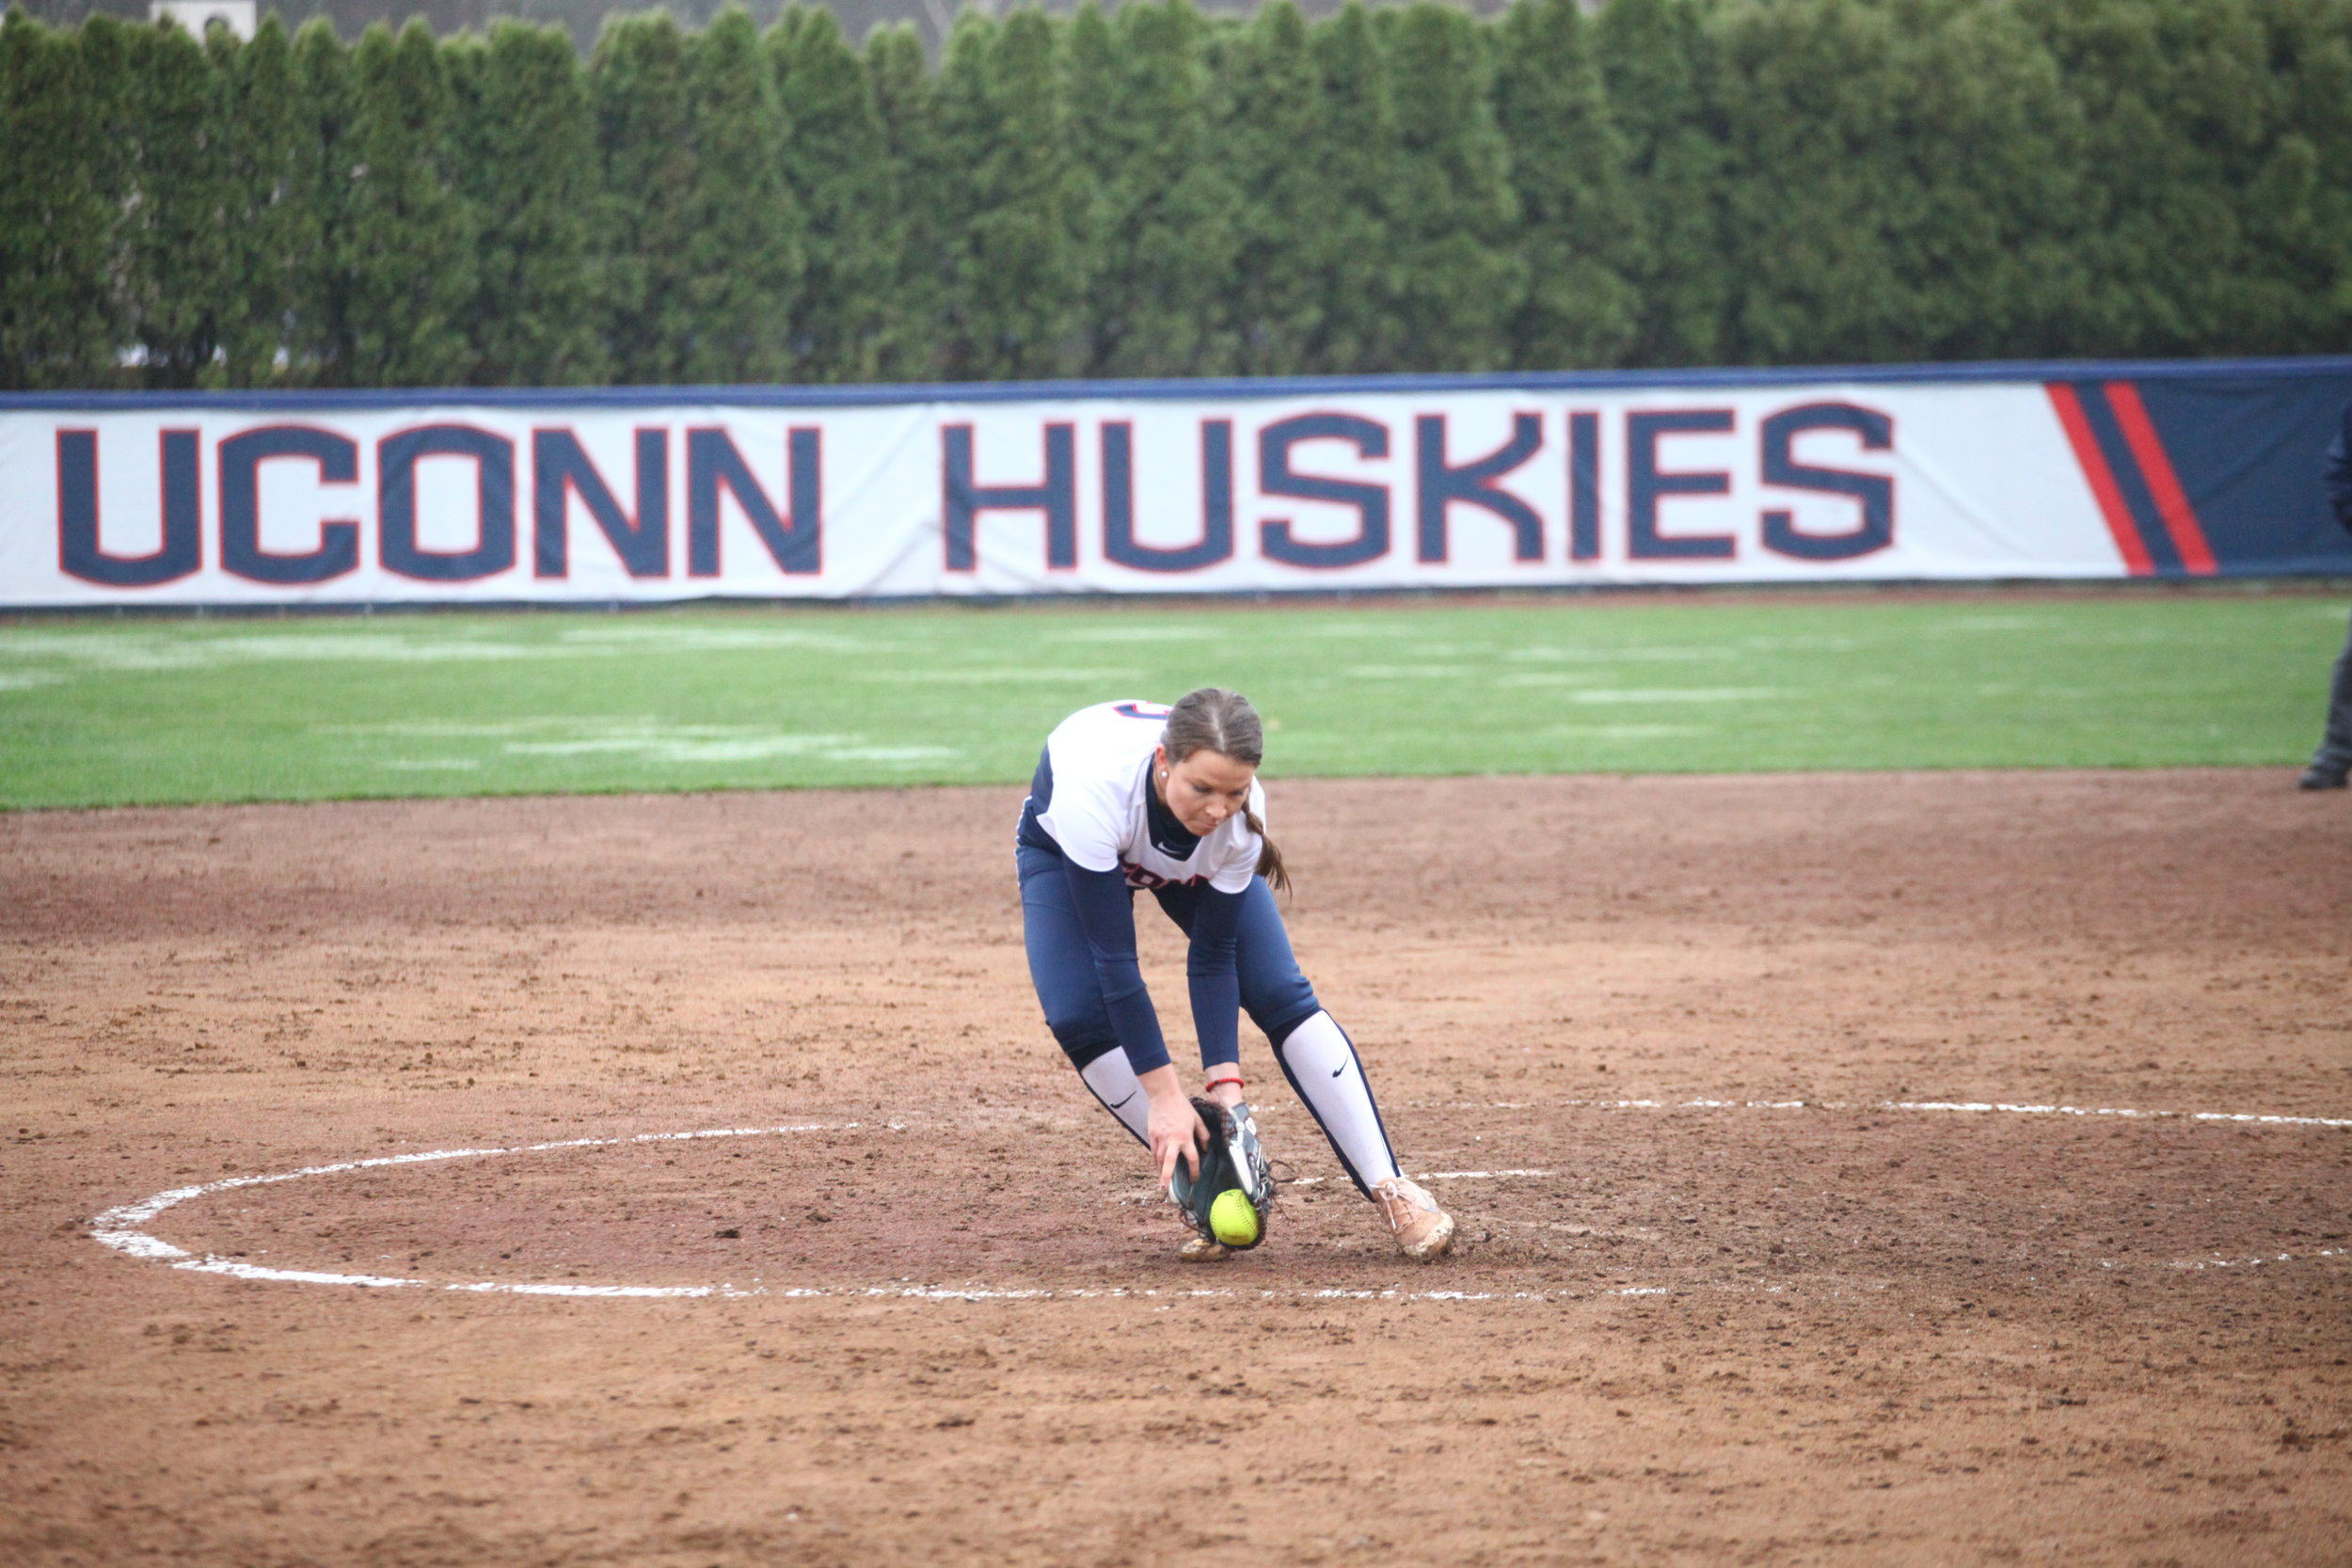 With the sweep, UConn moves to 1-10 in their conference. (Tyler Benton/The Daily Campus)